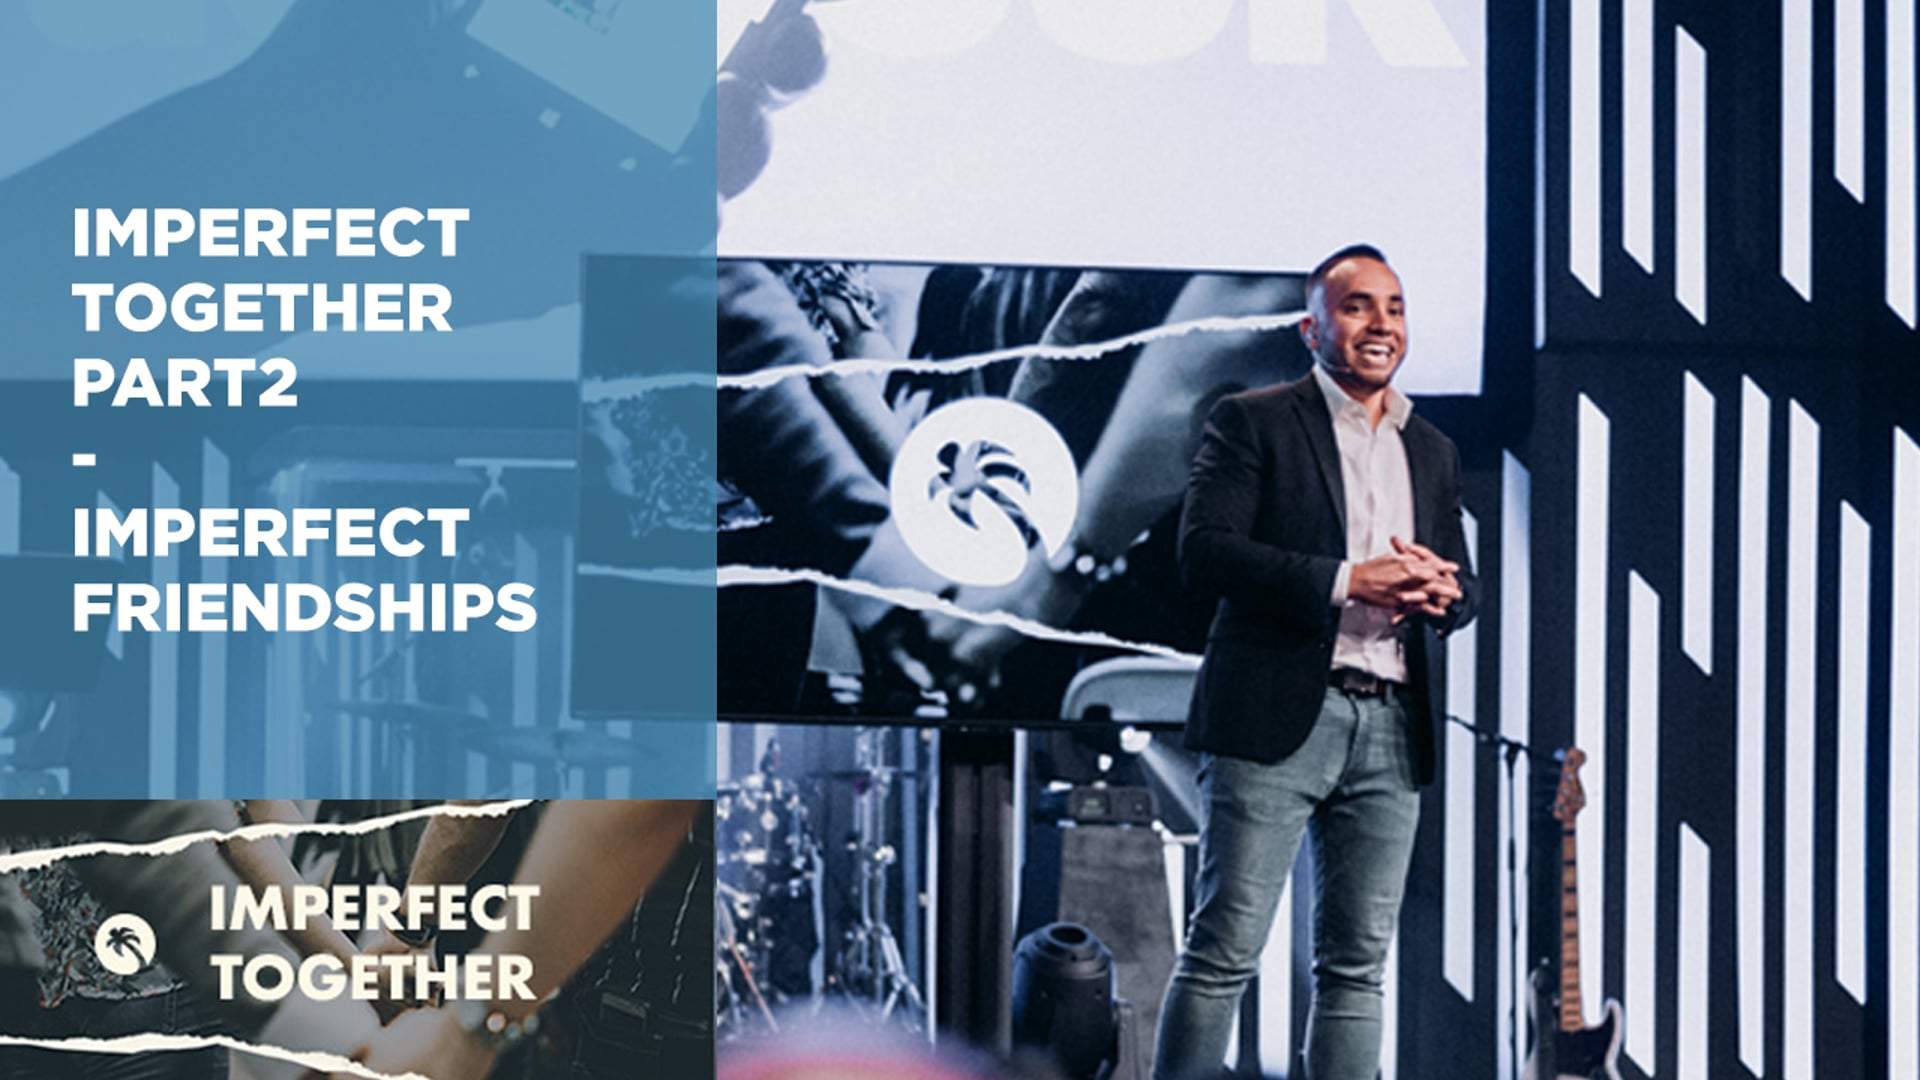 Imperfect Together Part 2 - Imperfect Friendships